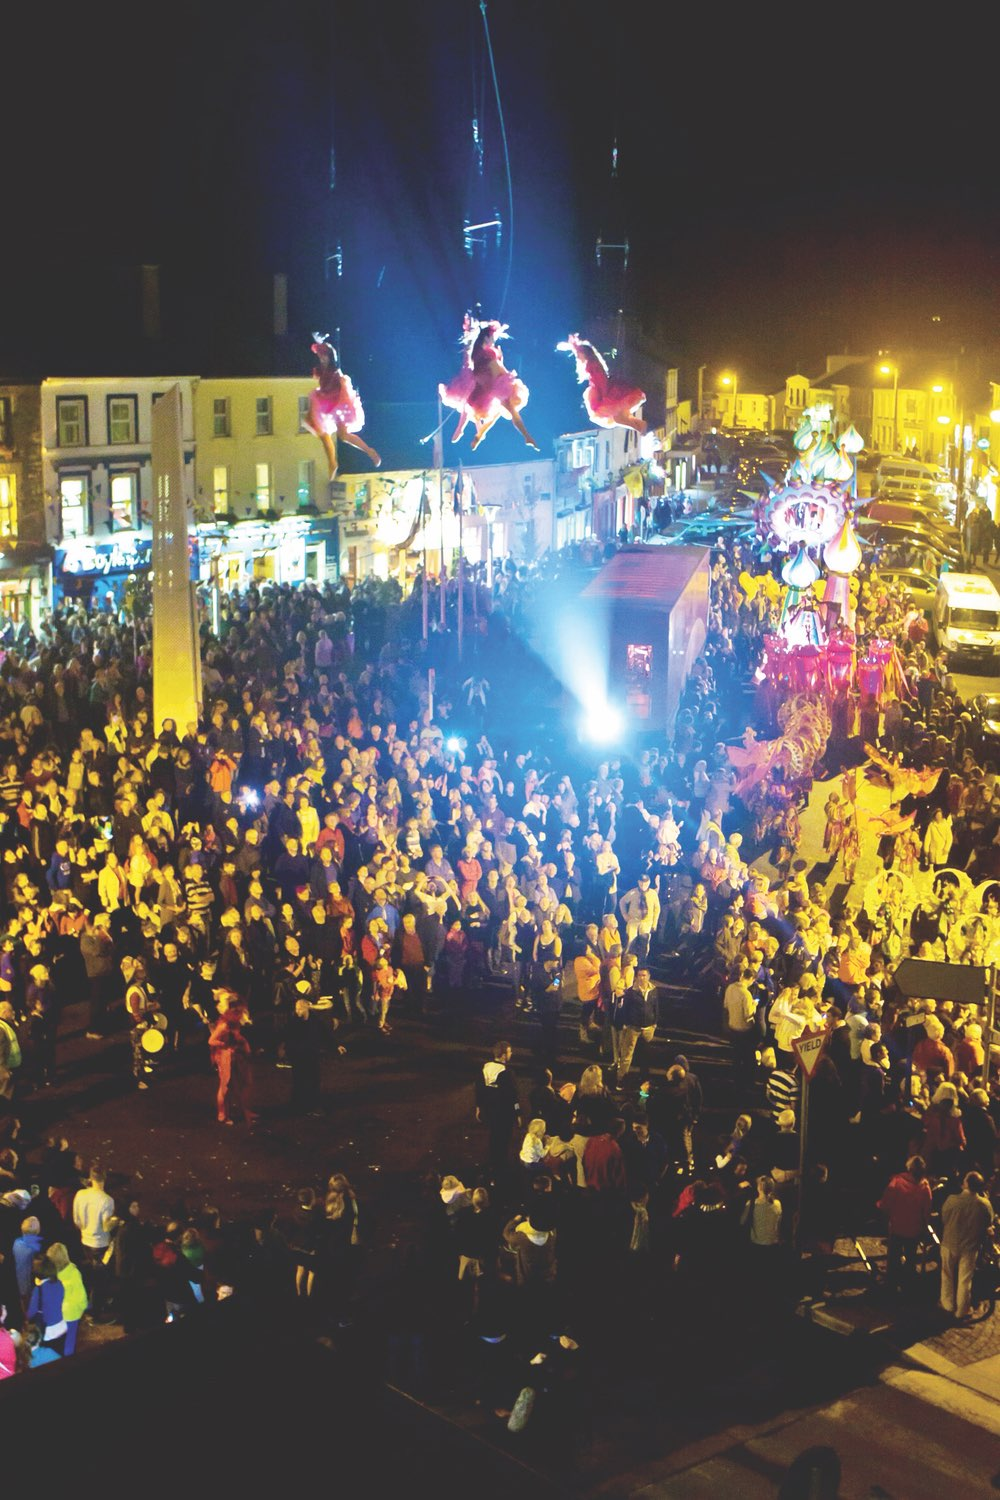 Clifden Arts Festival, Grand Parade is choreographed by LUXe Processional Spectacle and Landscape Theatre and the wonderful Fidget Feet Aerial Dance Theatre.